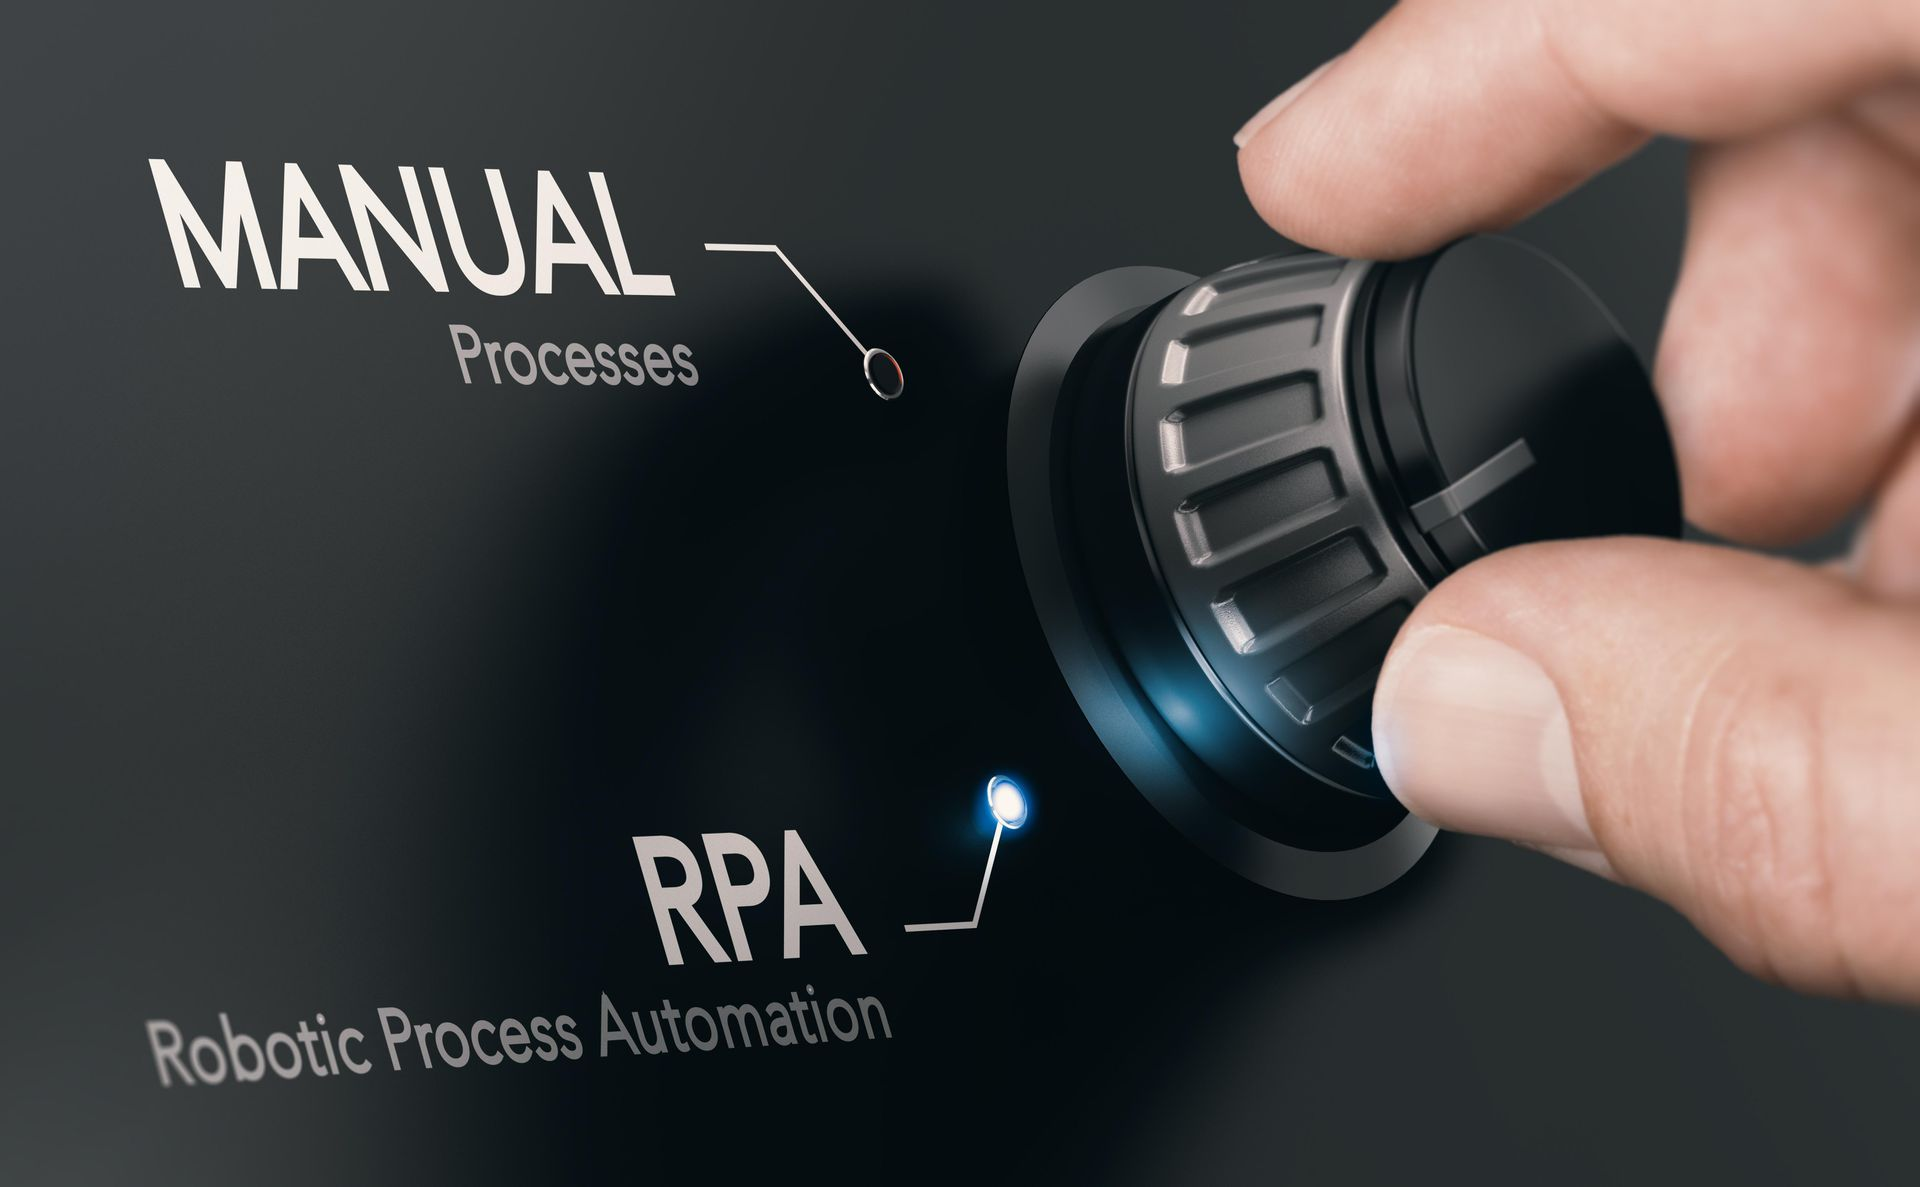 Robotic Process Automation / Manual